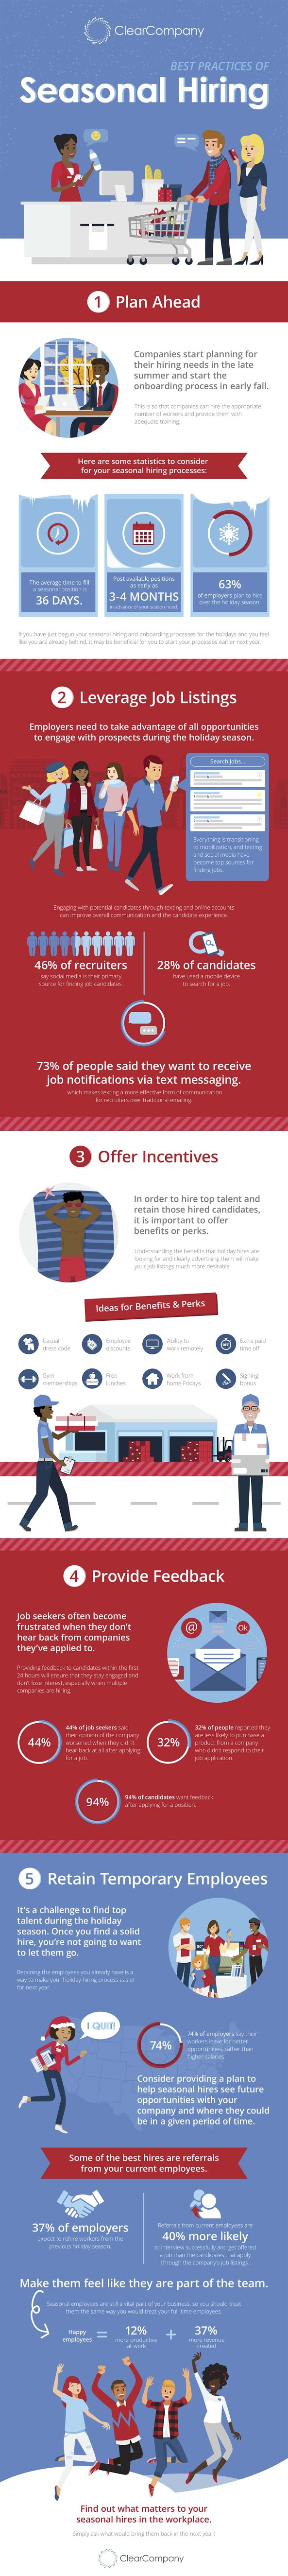 Best Practices of Seasonal Hiring #infographic